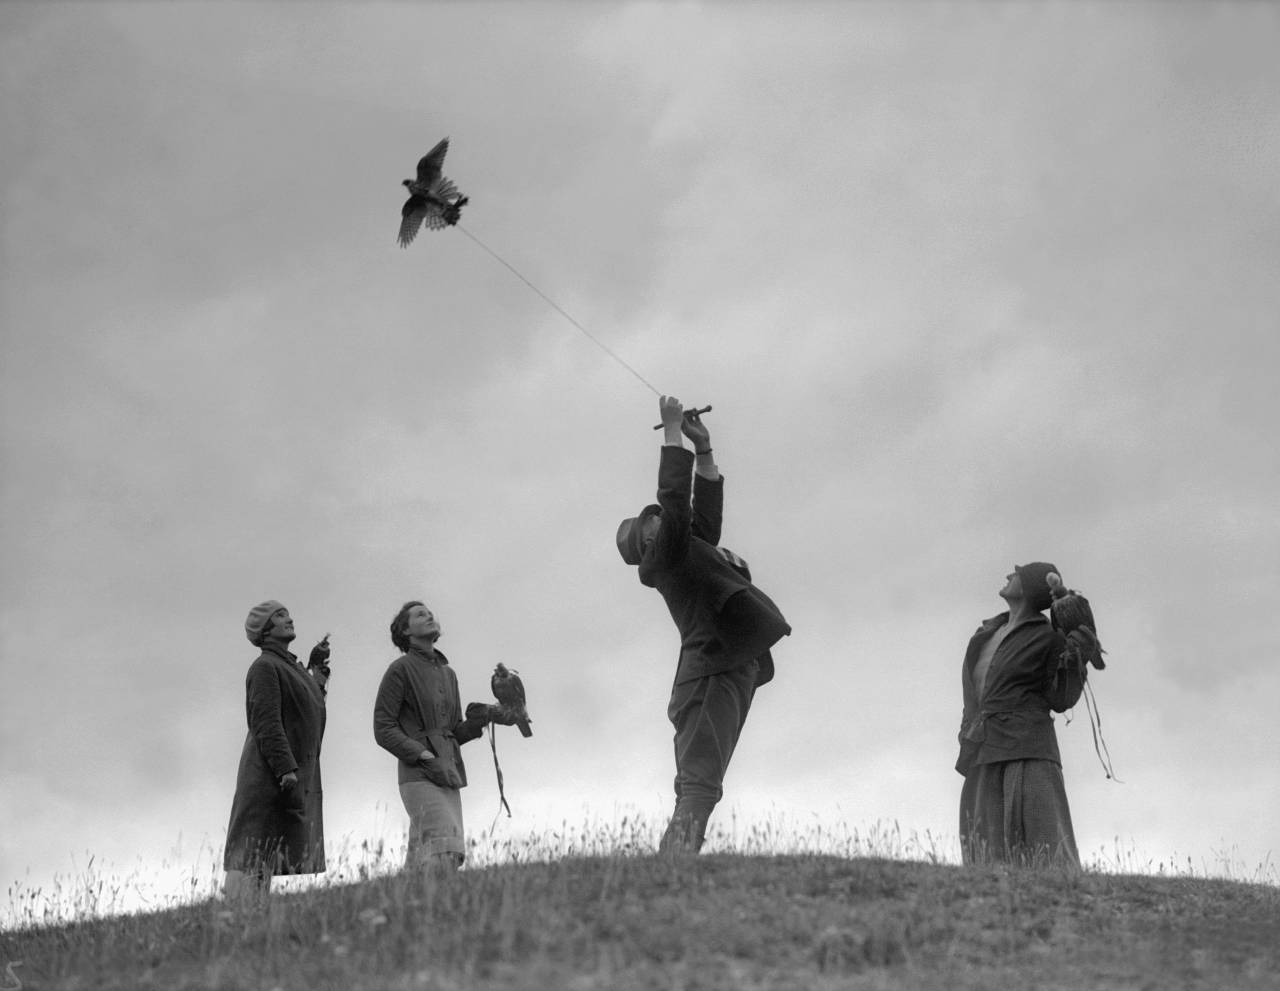 7th August 1930:  Female members of the British Falcon and Hawk Club flying birds on the end of strings at Avebury in Wiltshire.  (Photo by Fox Photos/Getty Images)